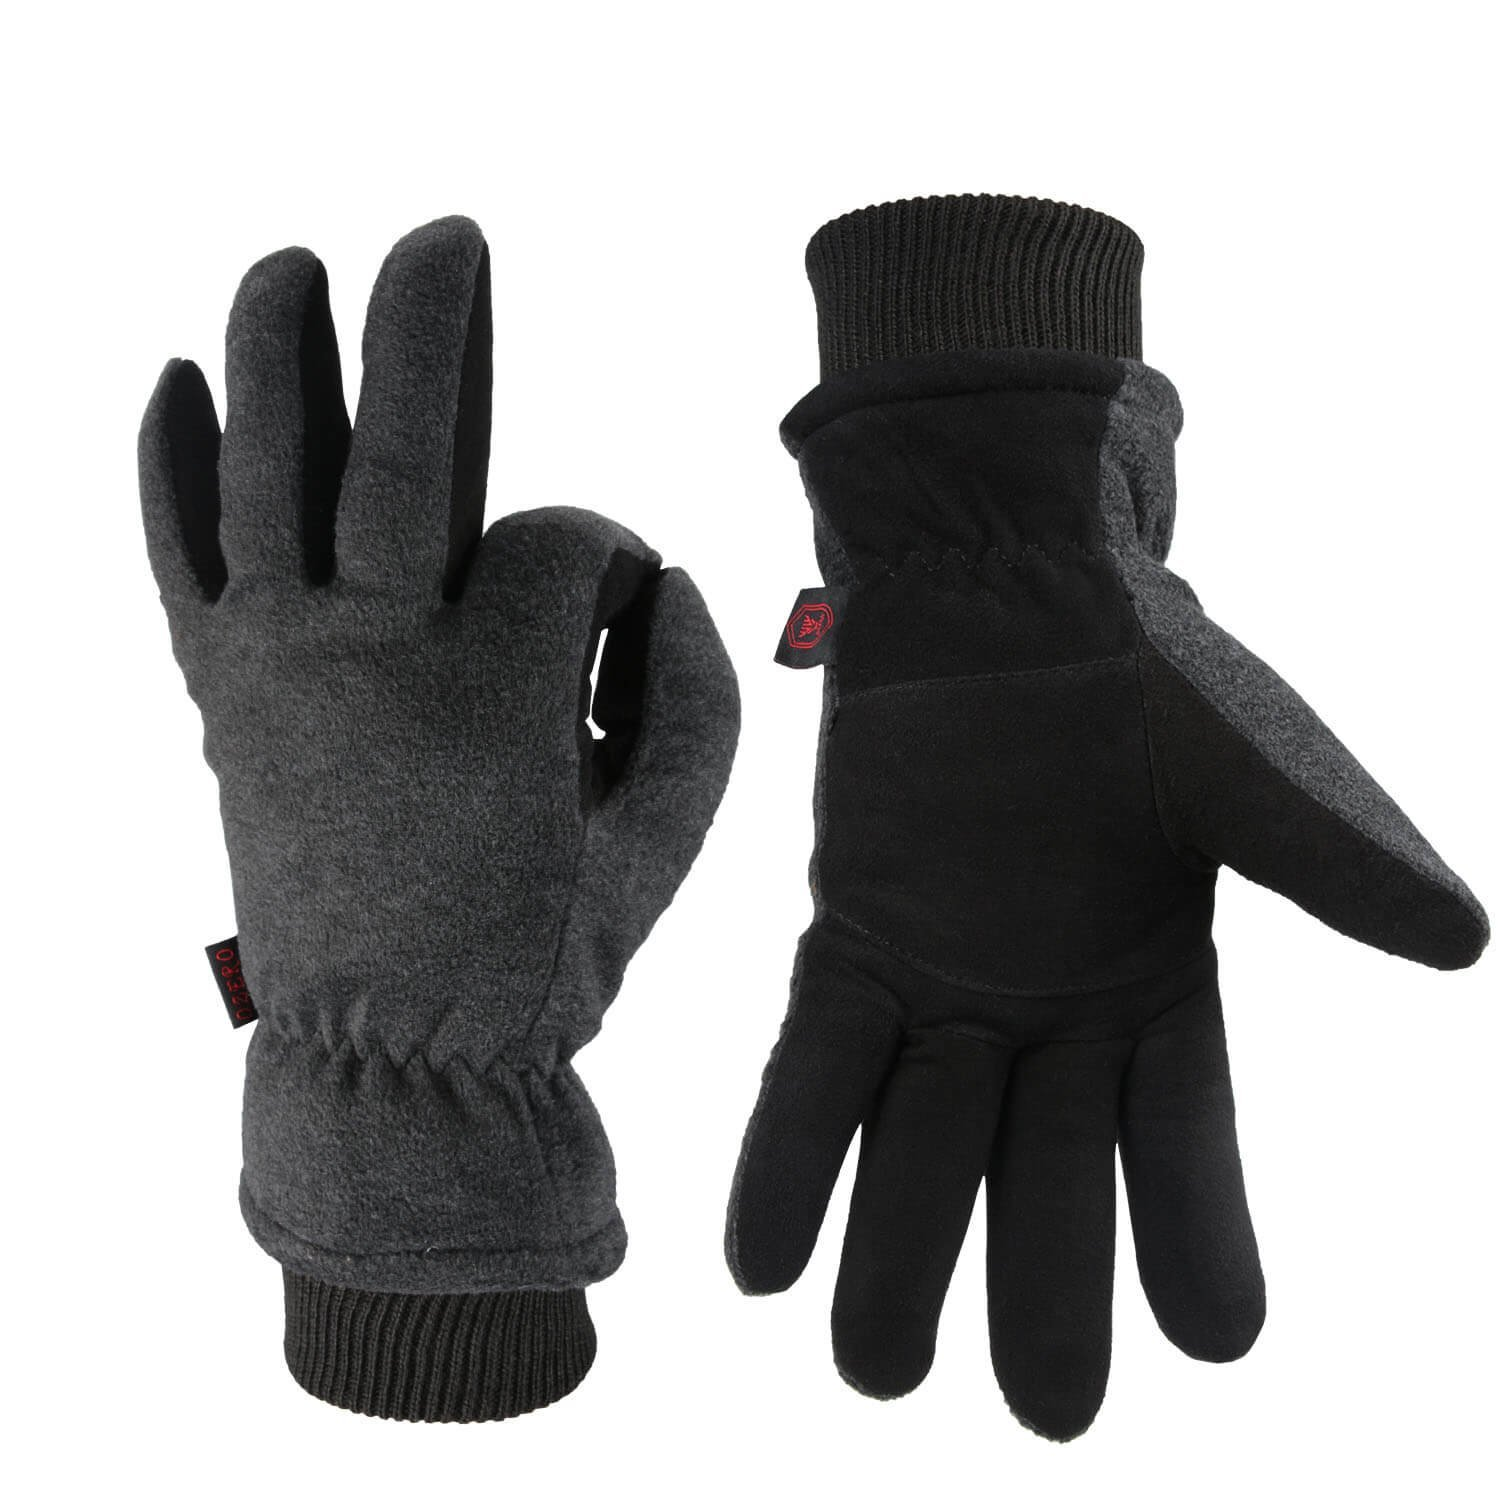 OZERO Work Gloves -30°F Coldproof Winter Ski Snow Glove - Deerskin Leather Palm & Polar Fleece Back Insulated Cotton - Windproof Water-Resistant Warm Hands in Cold Weather Women Men - Gray(M)